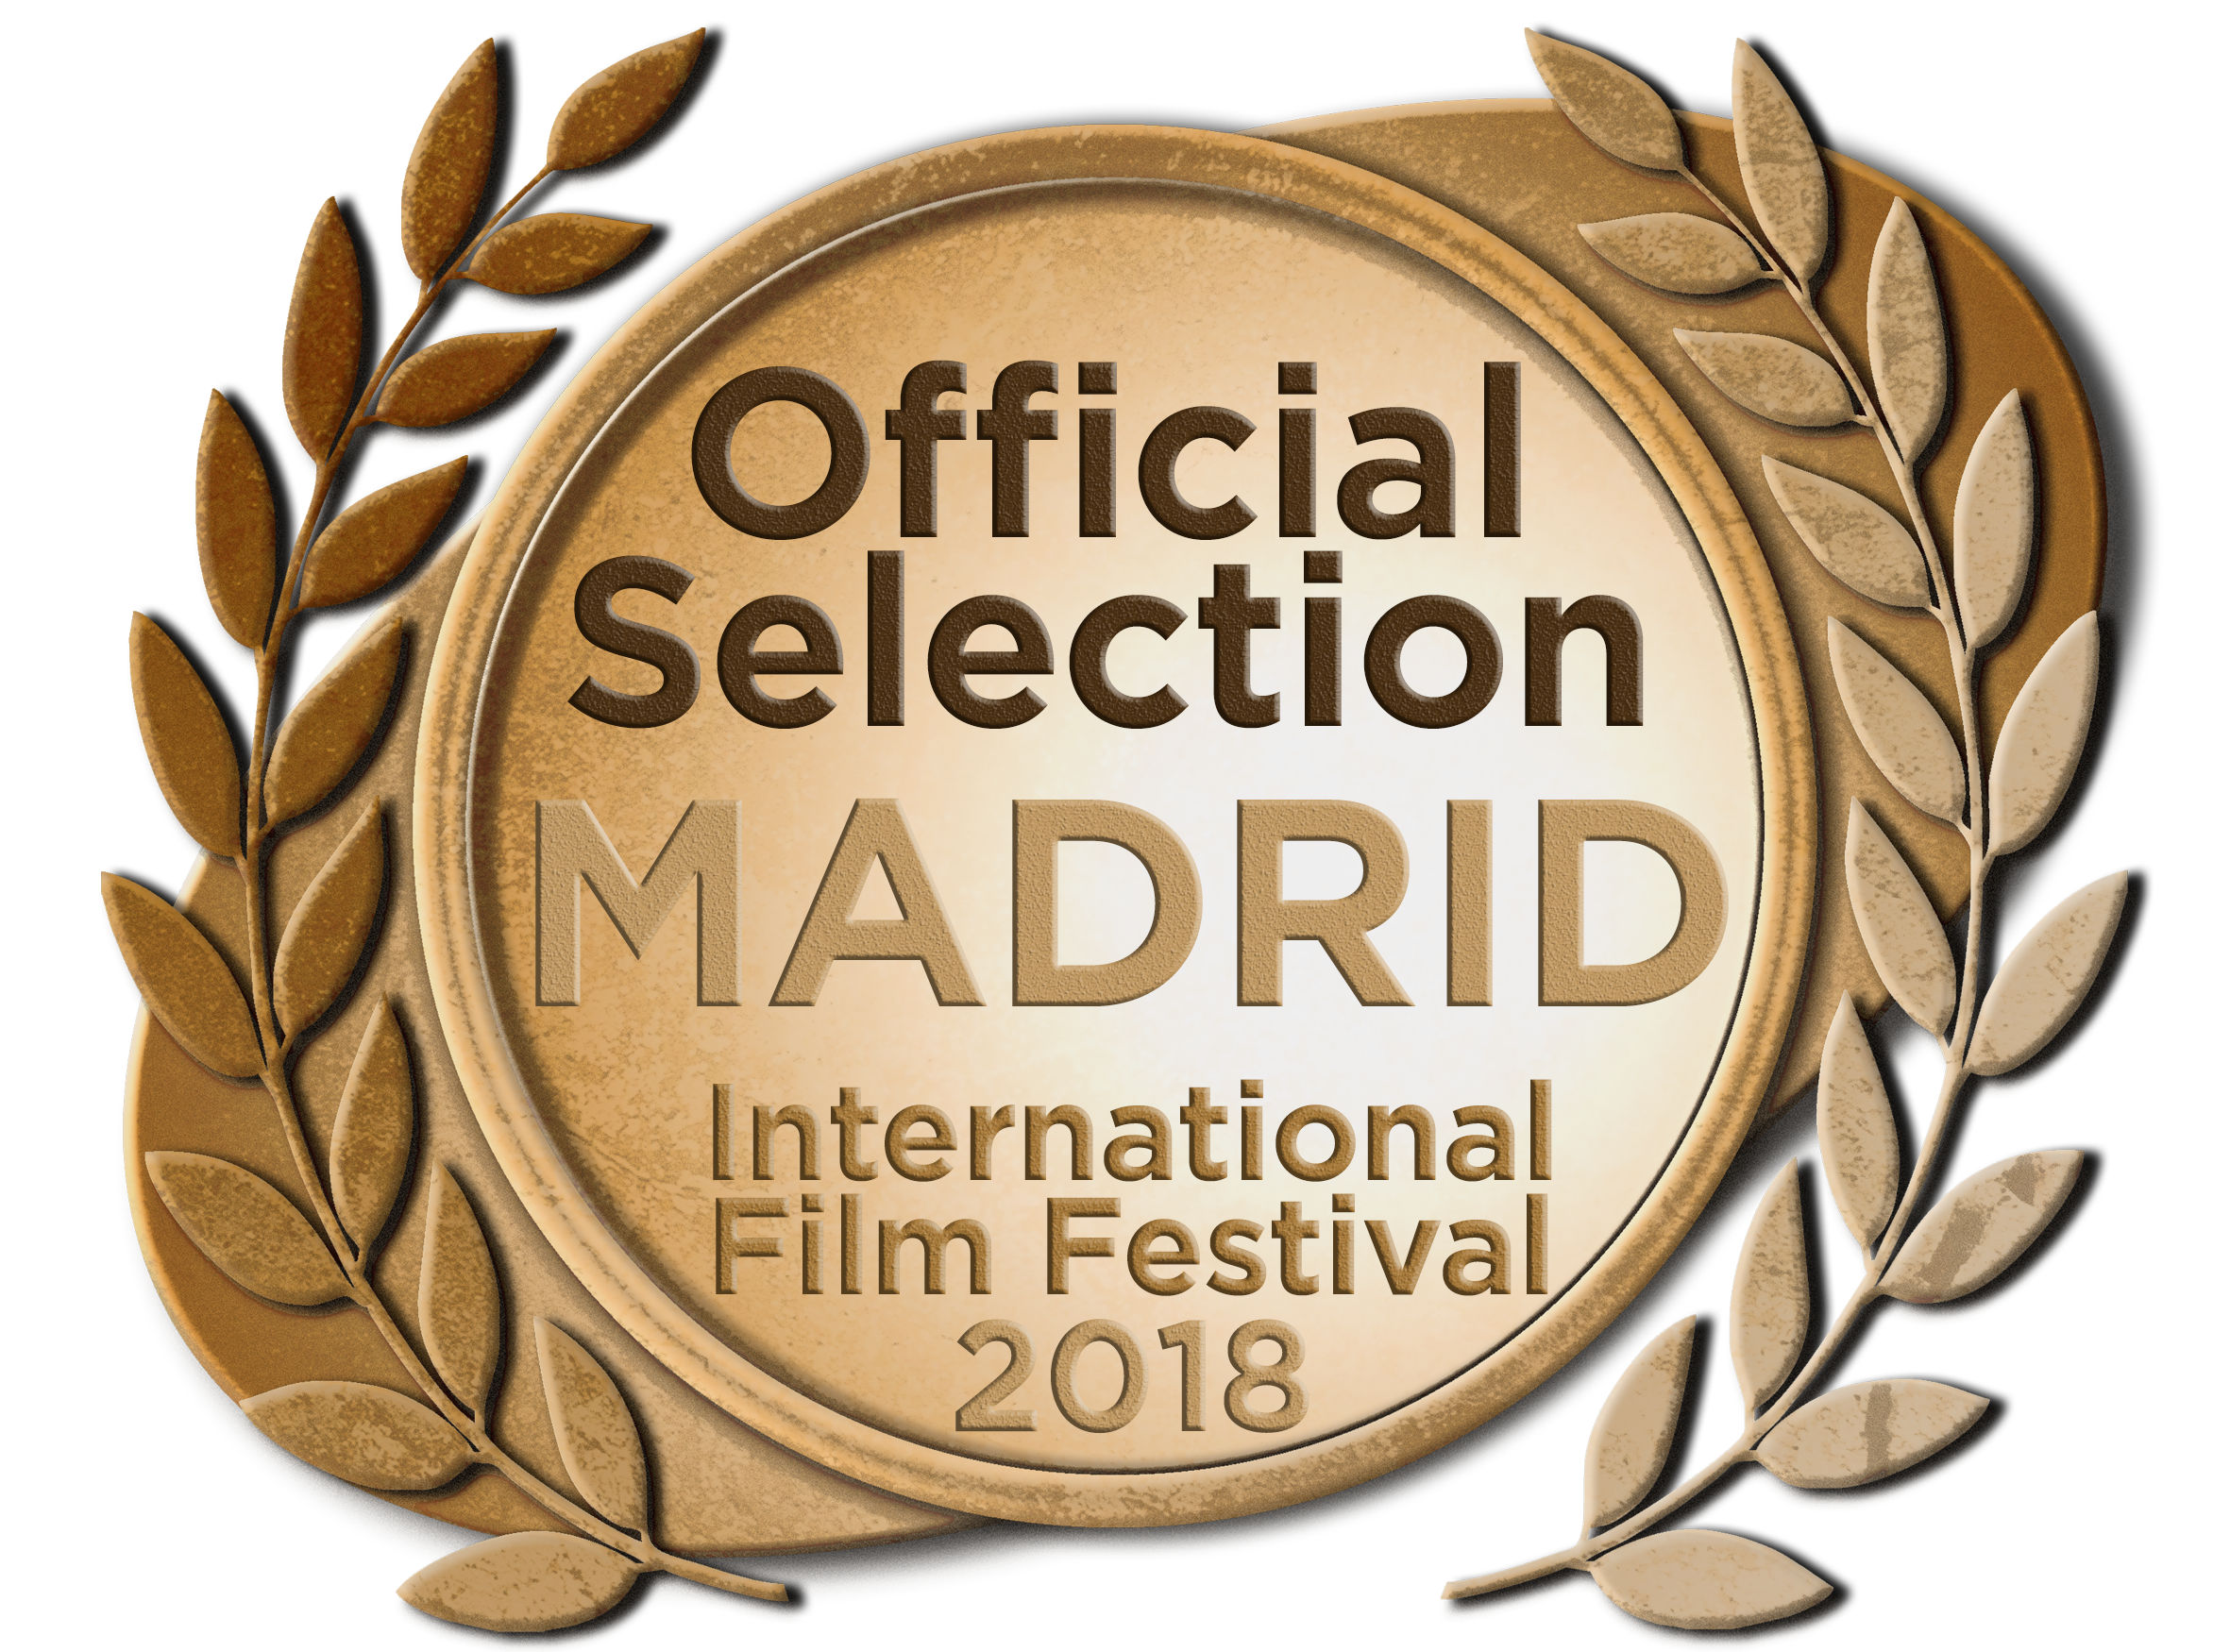 Official selection MADRID International Film Festival 2018